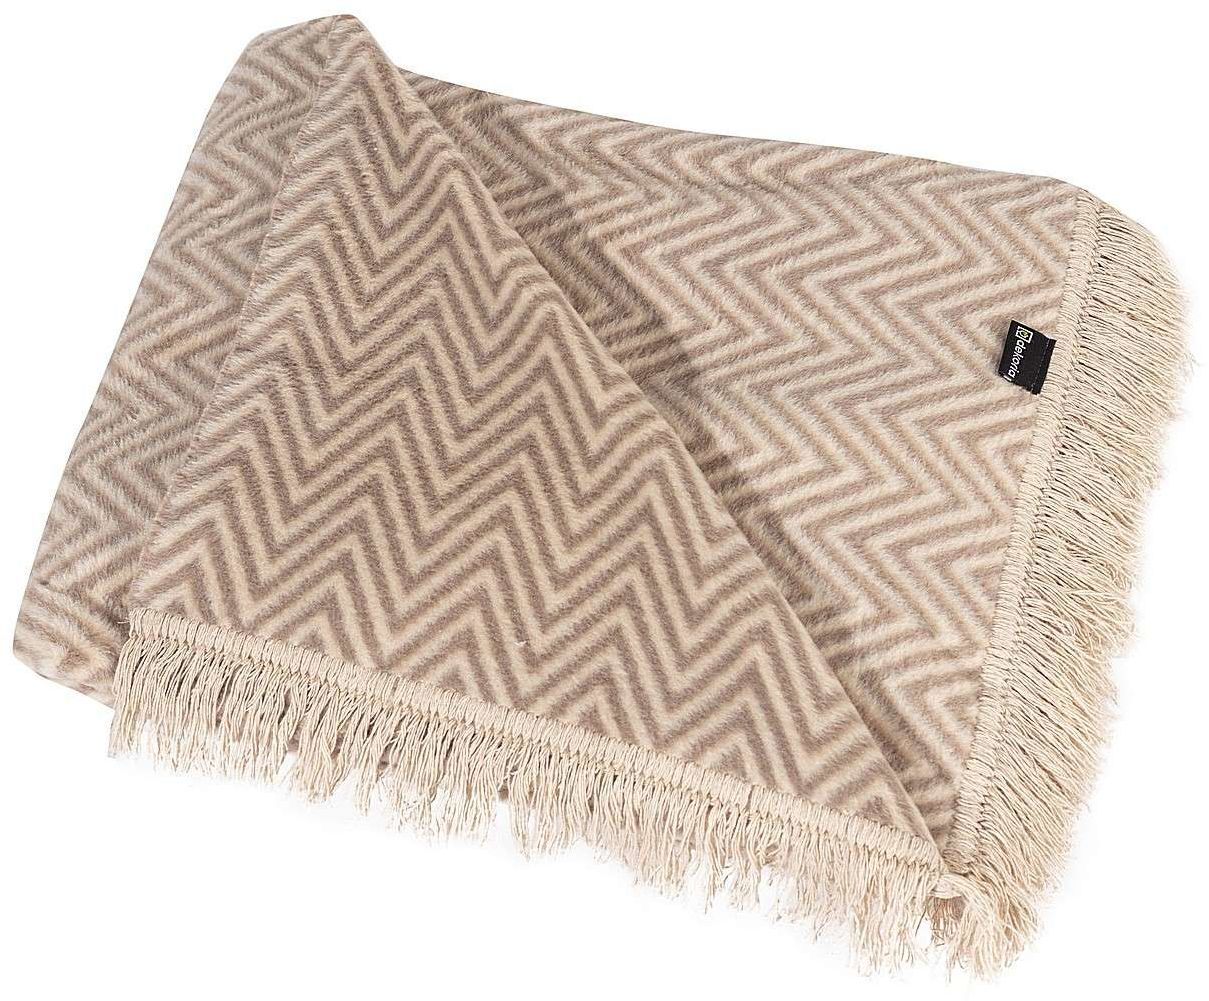 Koc Cotton Cloud 150x200cm Beige Chevron